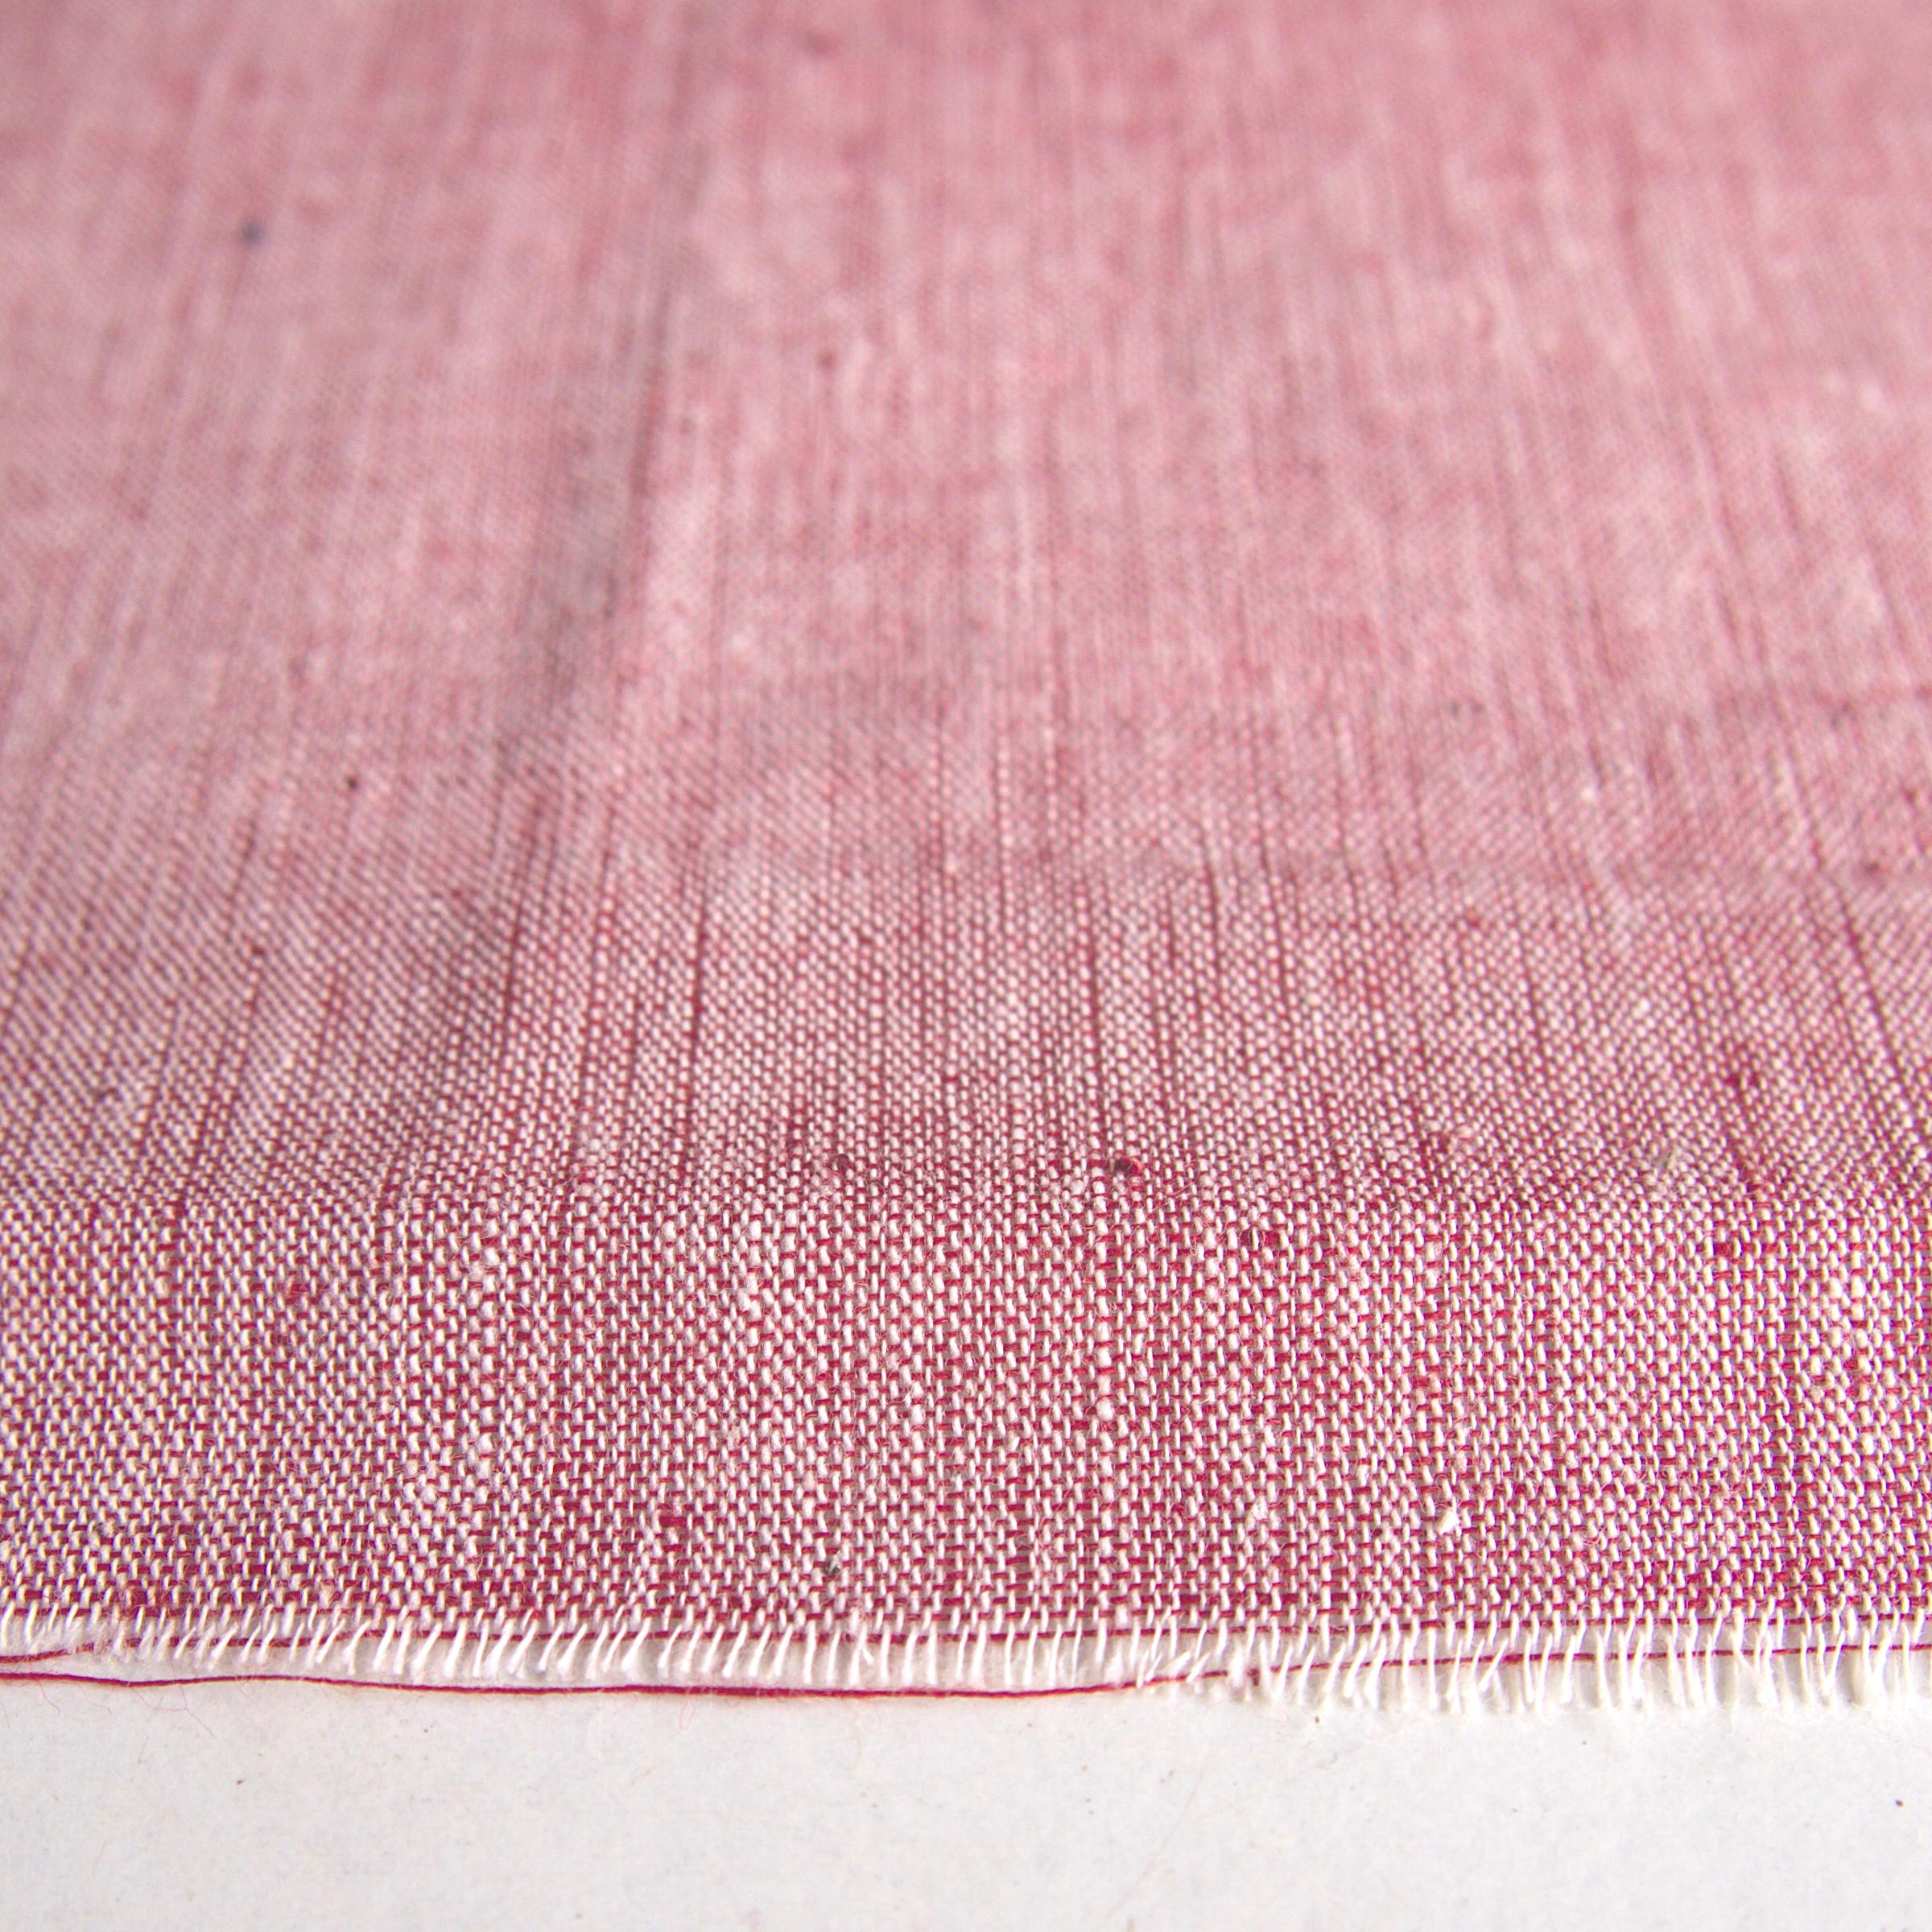 100 % Handloom Woven Cotton - Cross Colour - White Warp, Alizarin Weft - Close Up